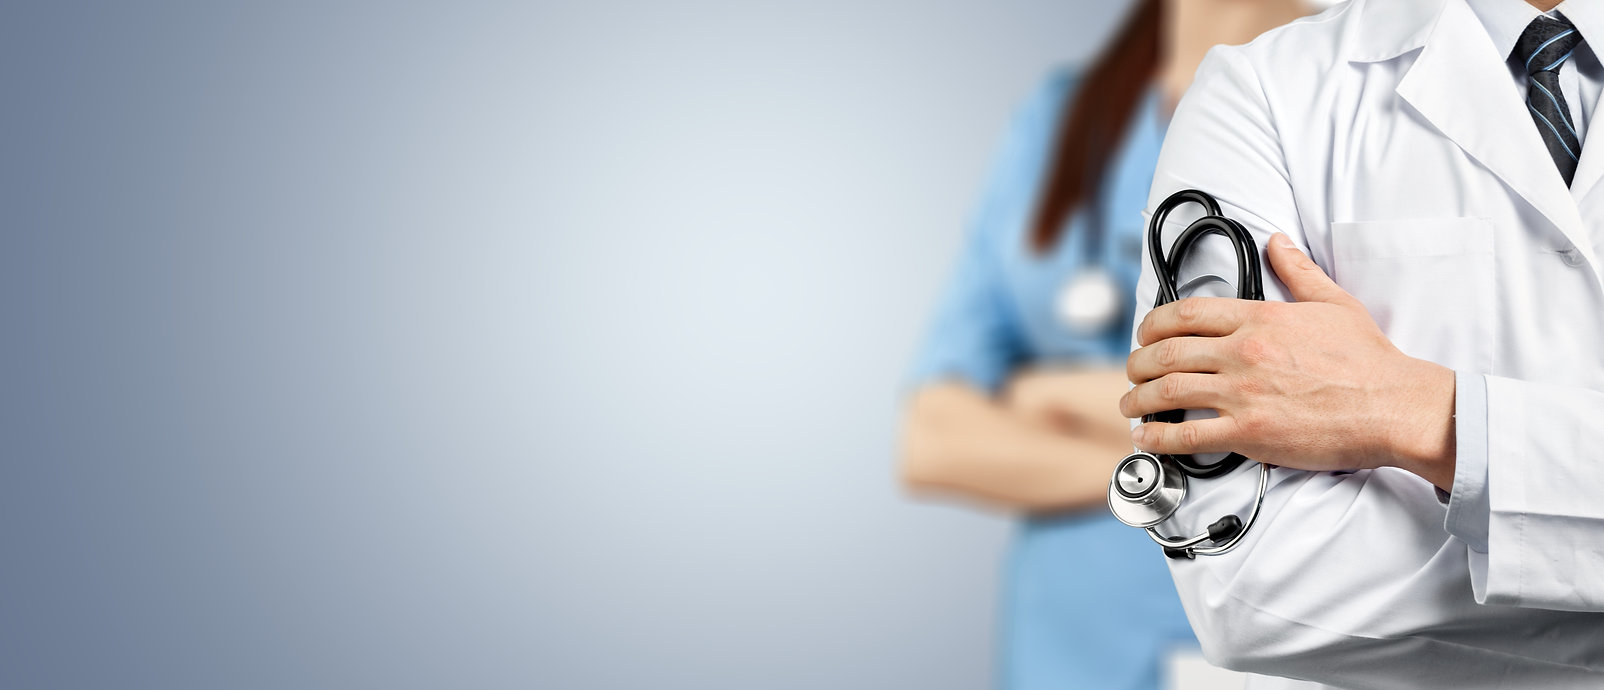 Doctor team with medical stethoscope on